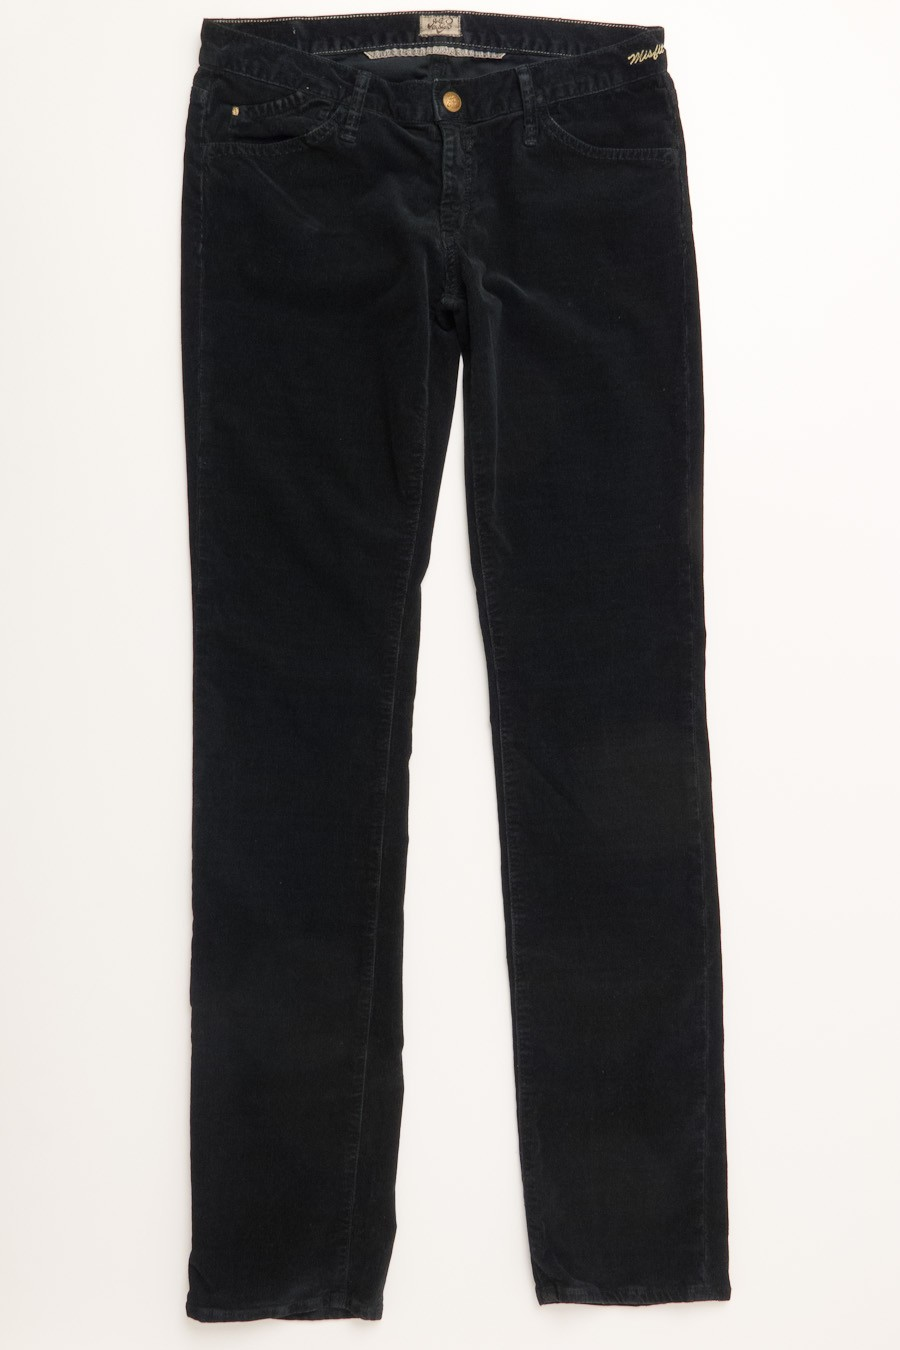 Find great deals on eBay for black corduroy pants women. Shop with confidence.